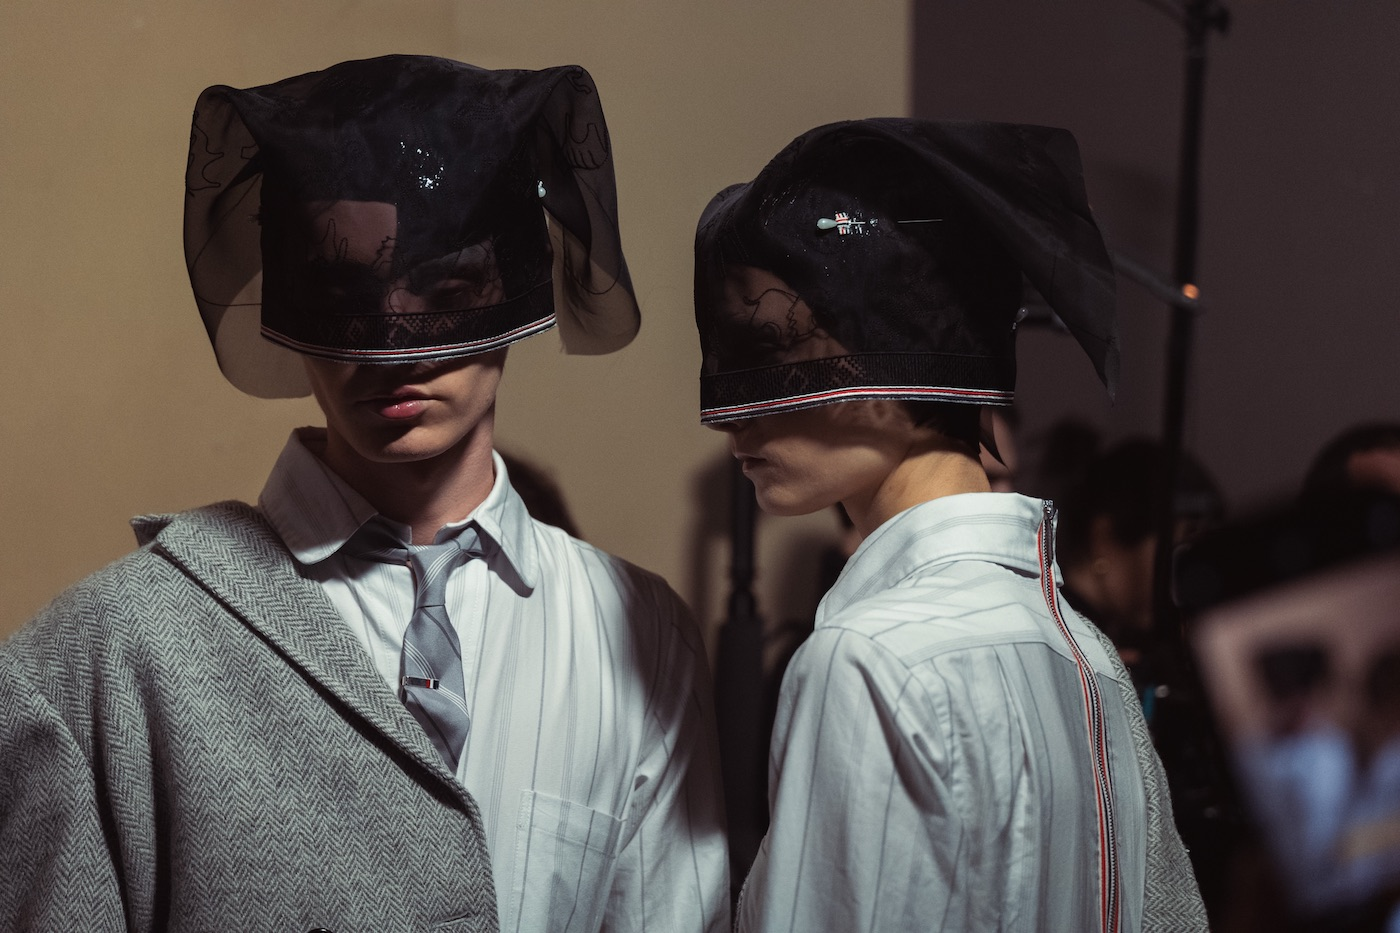 PFW Backstage: Thom Browne Autumn/Winter 2020 Runway Show